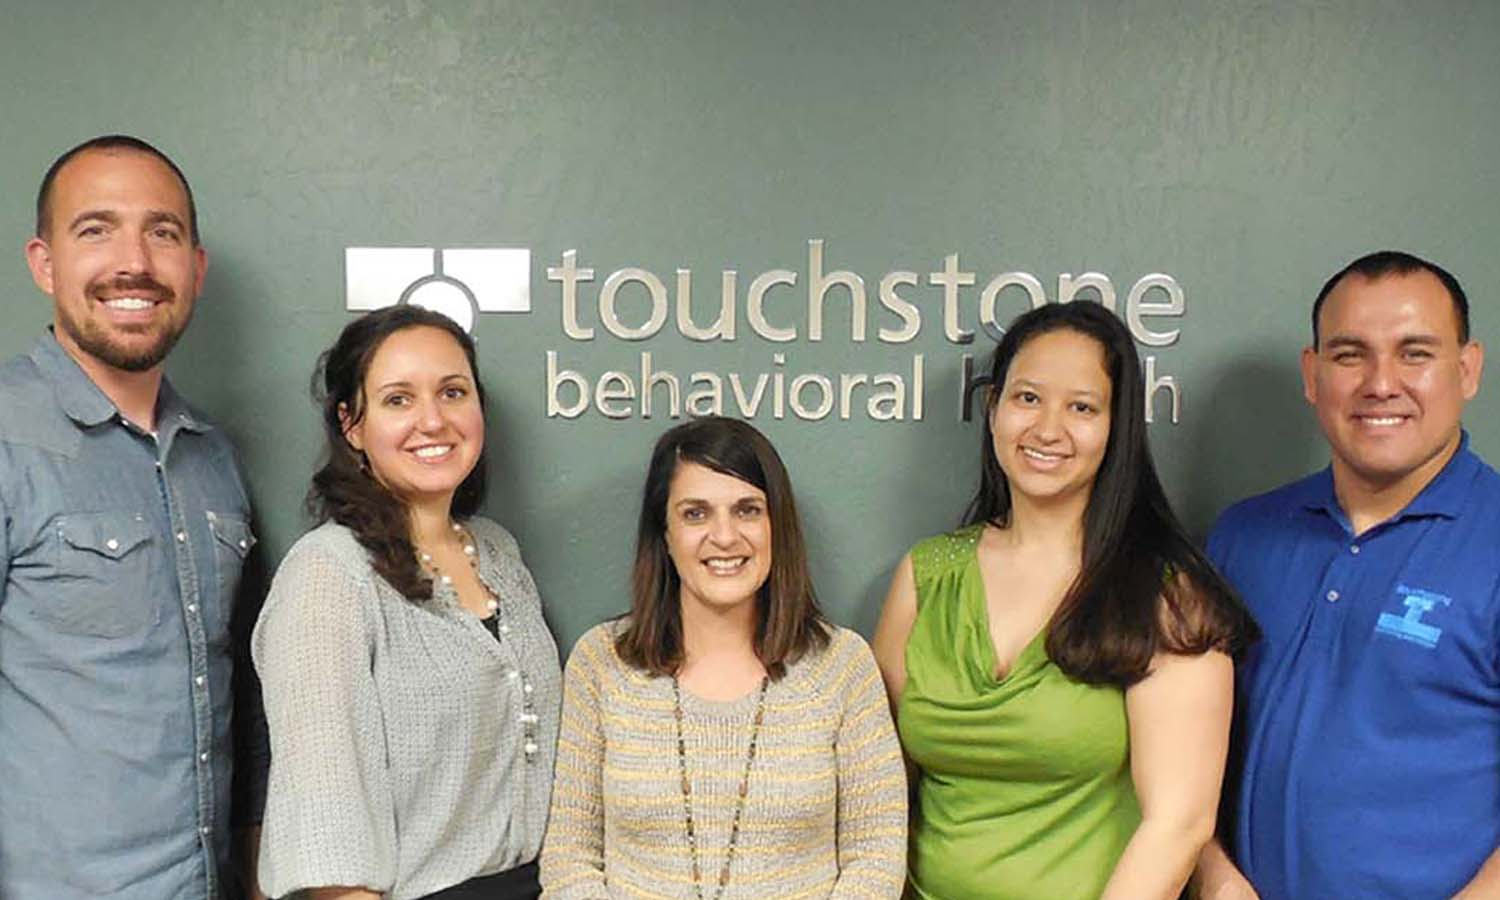 Touchstone Team